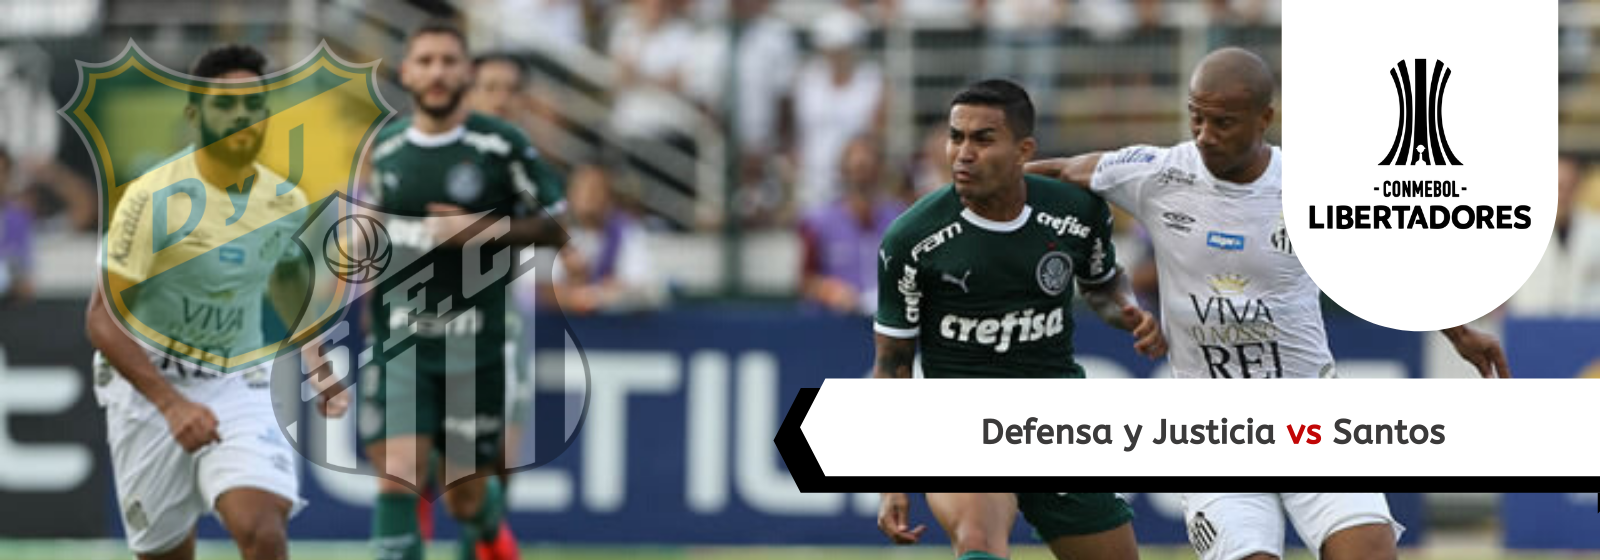 Asianconnect: Defensa y Justicia (Argentina) vs Santos (Brazil) Odds for March 3, 2020